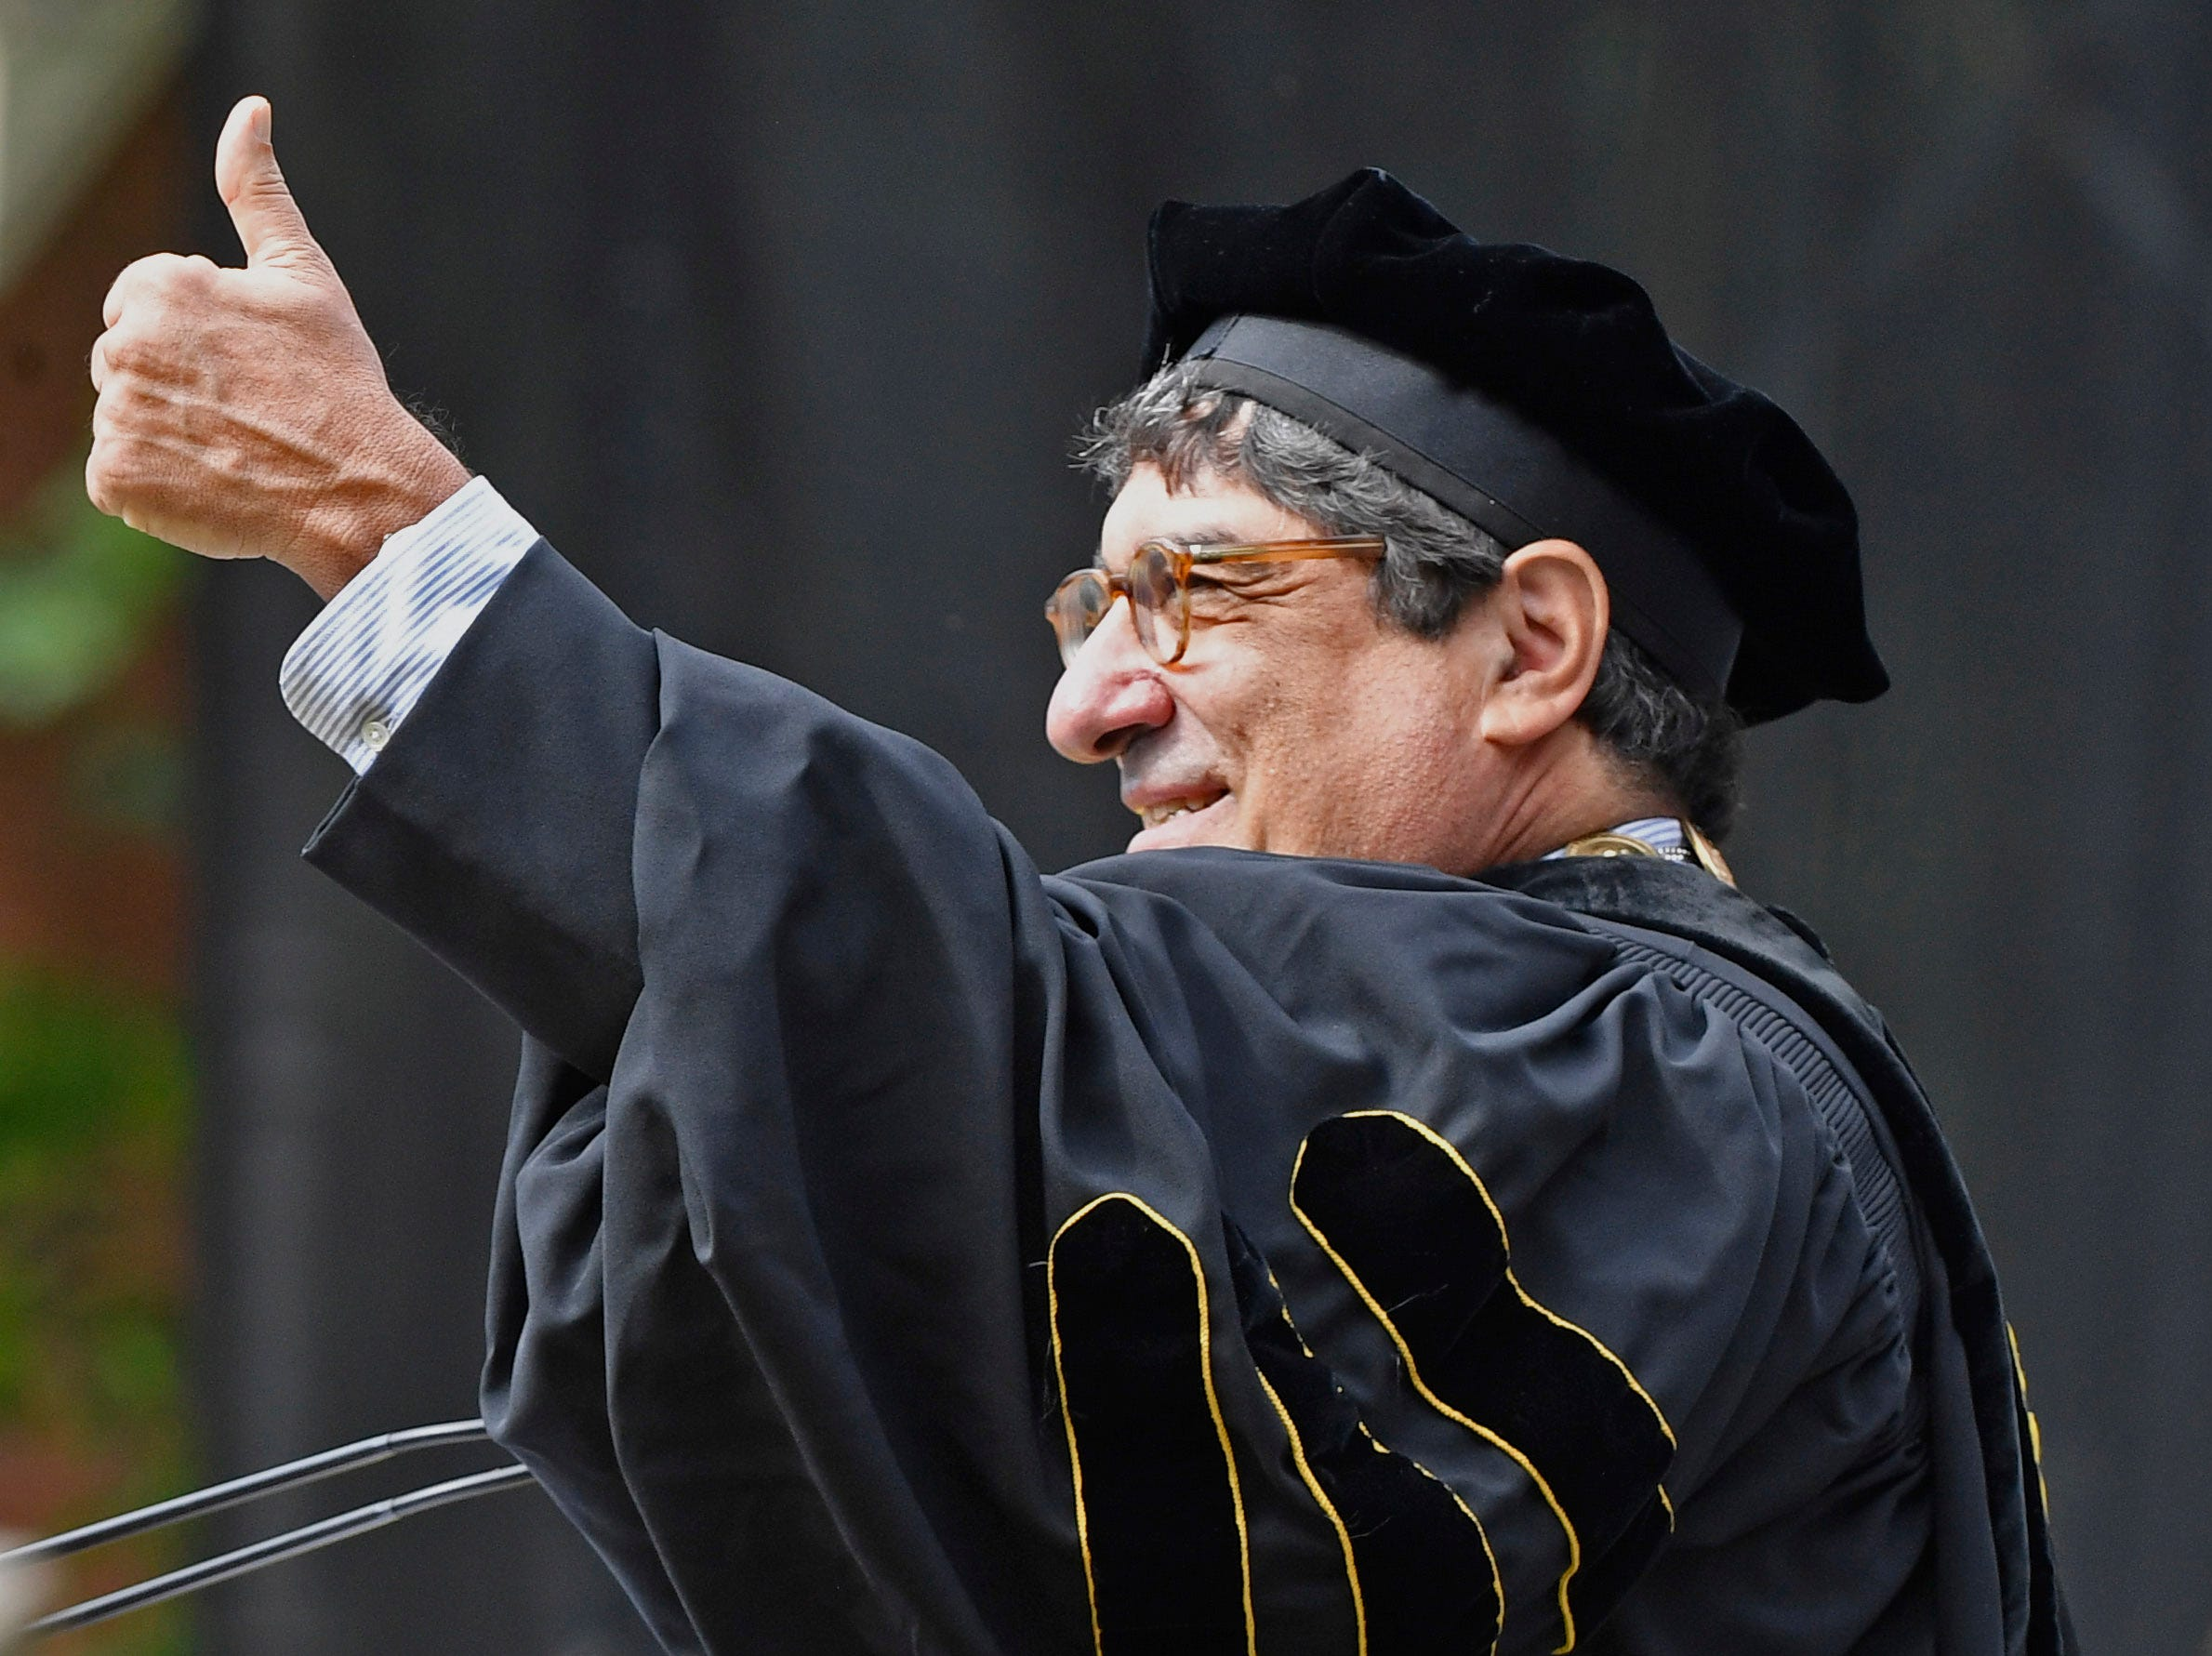 Vanderbilt University Chancellor Nicholas Zeppos gives a thumbs up to the crowd before delivering his commencement speech during Vanderbilt University graduation Friday, May 10, 2019, in Nashville, Tenn.